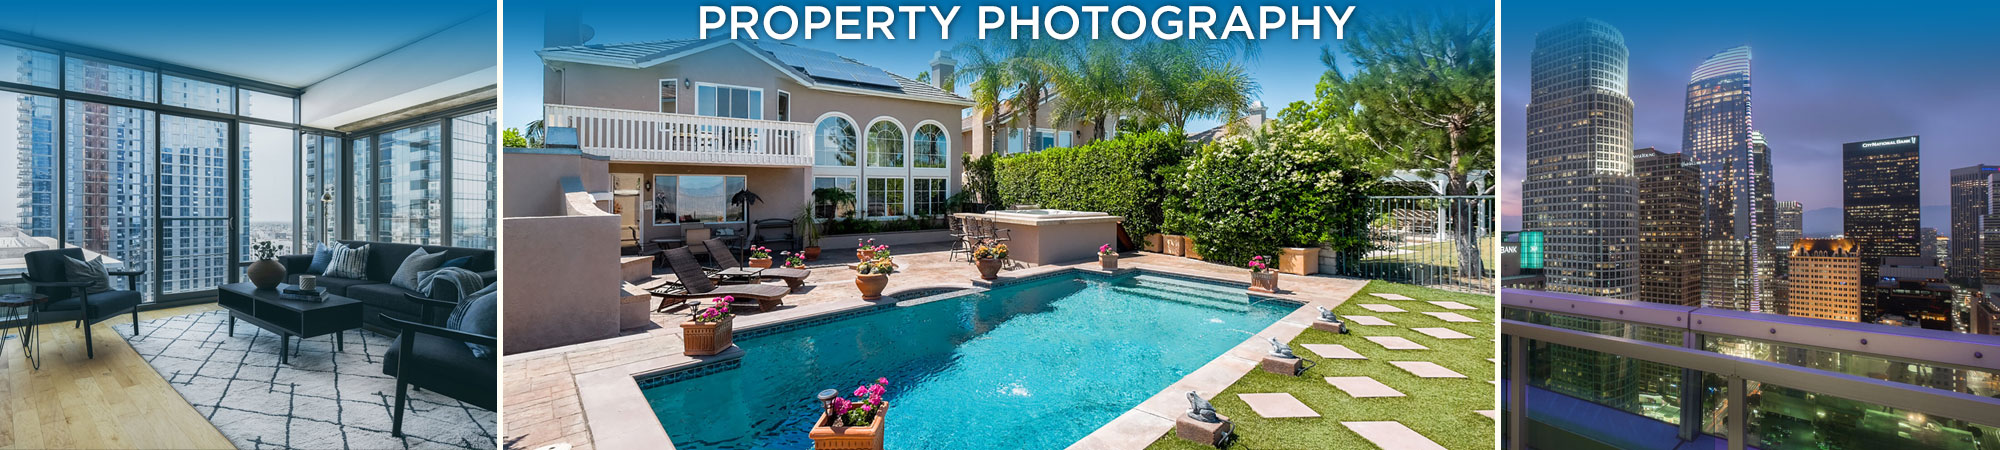 home and office photography services